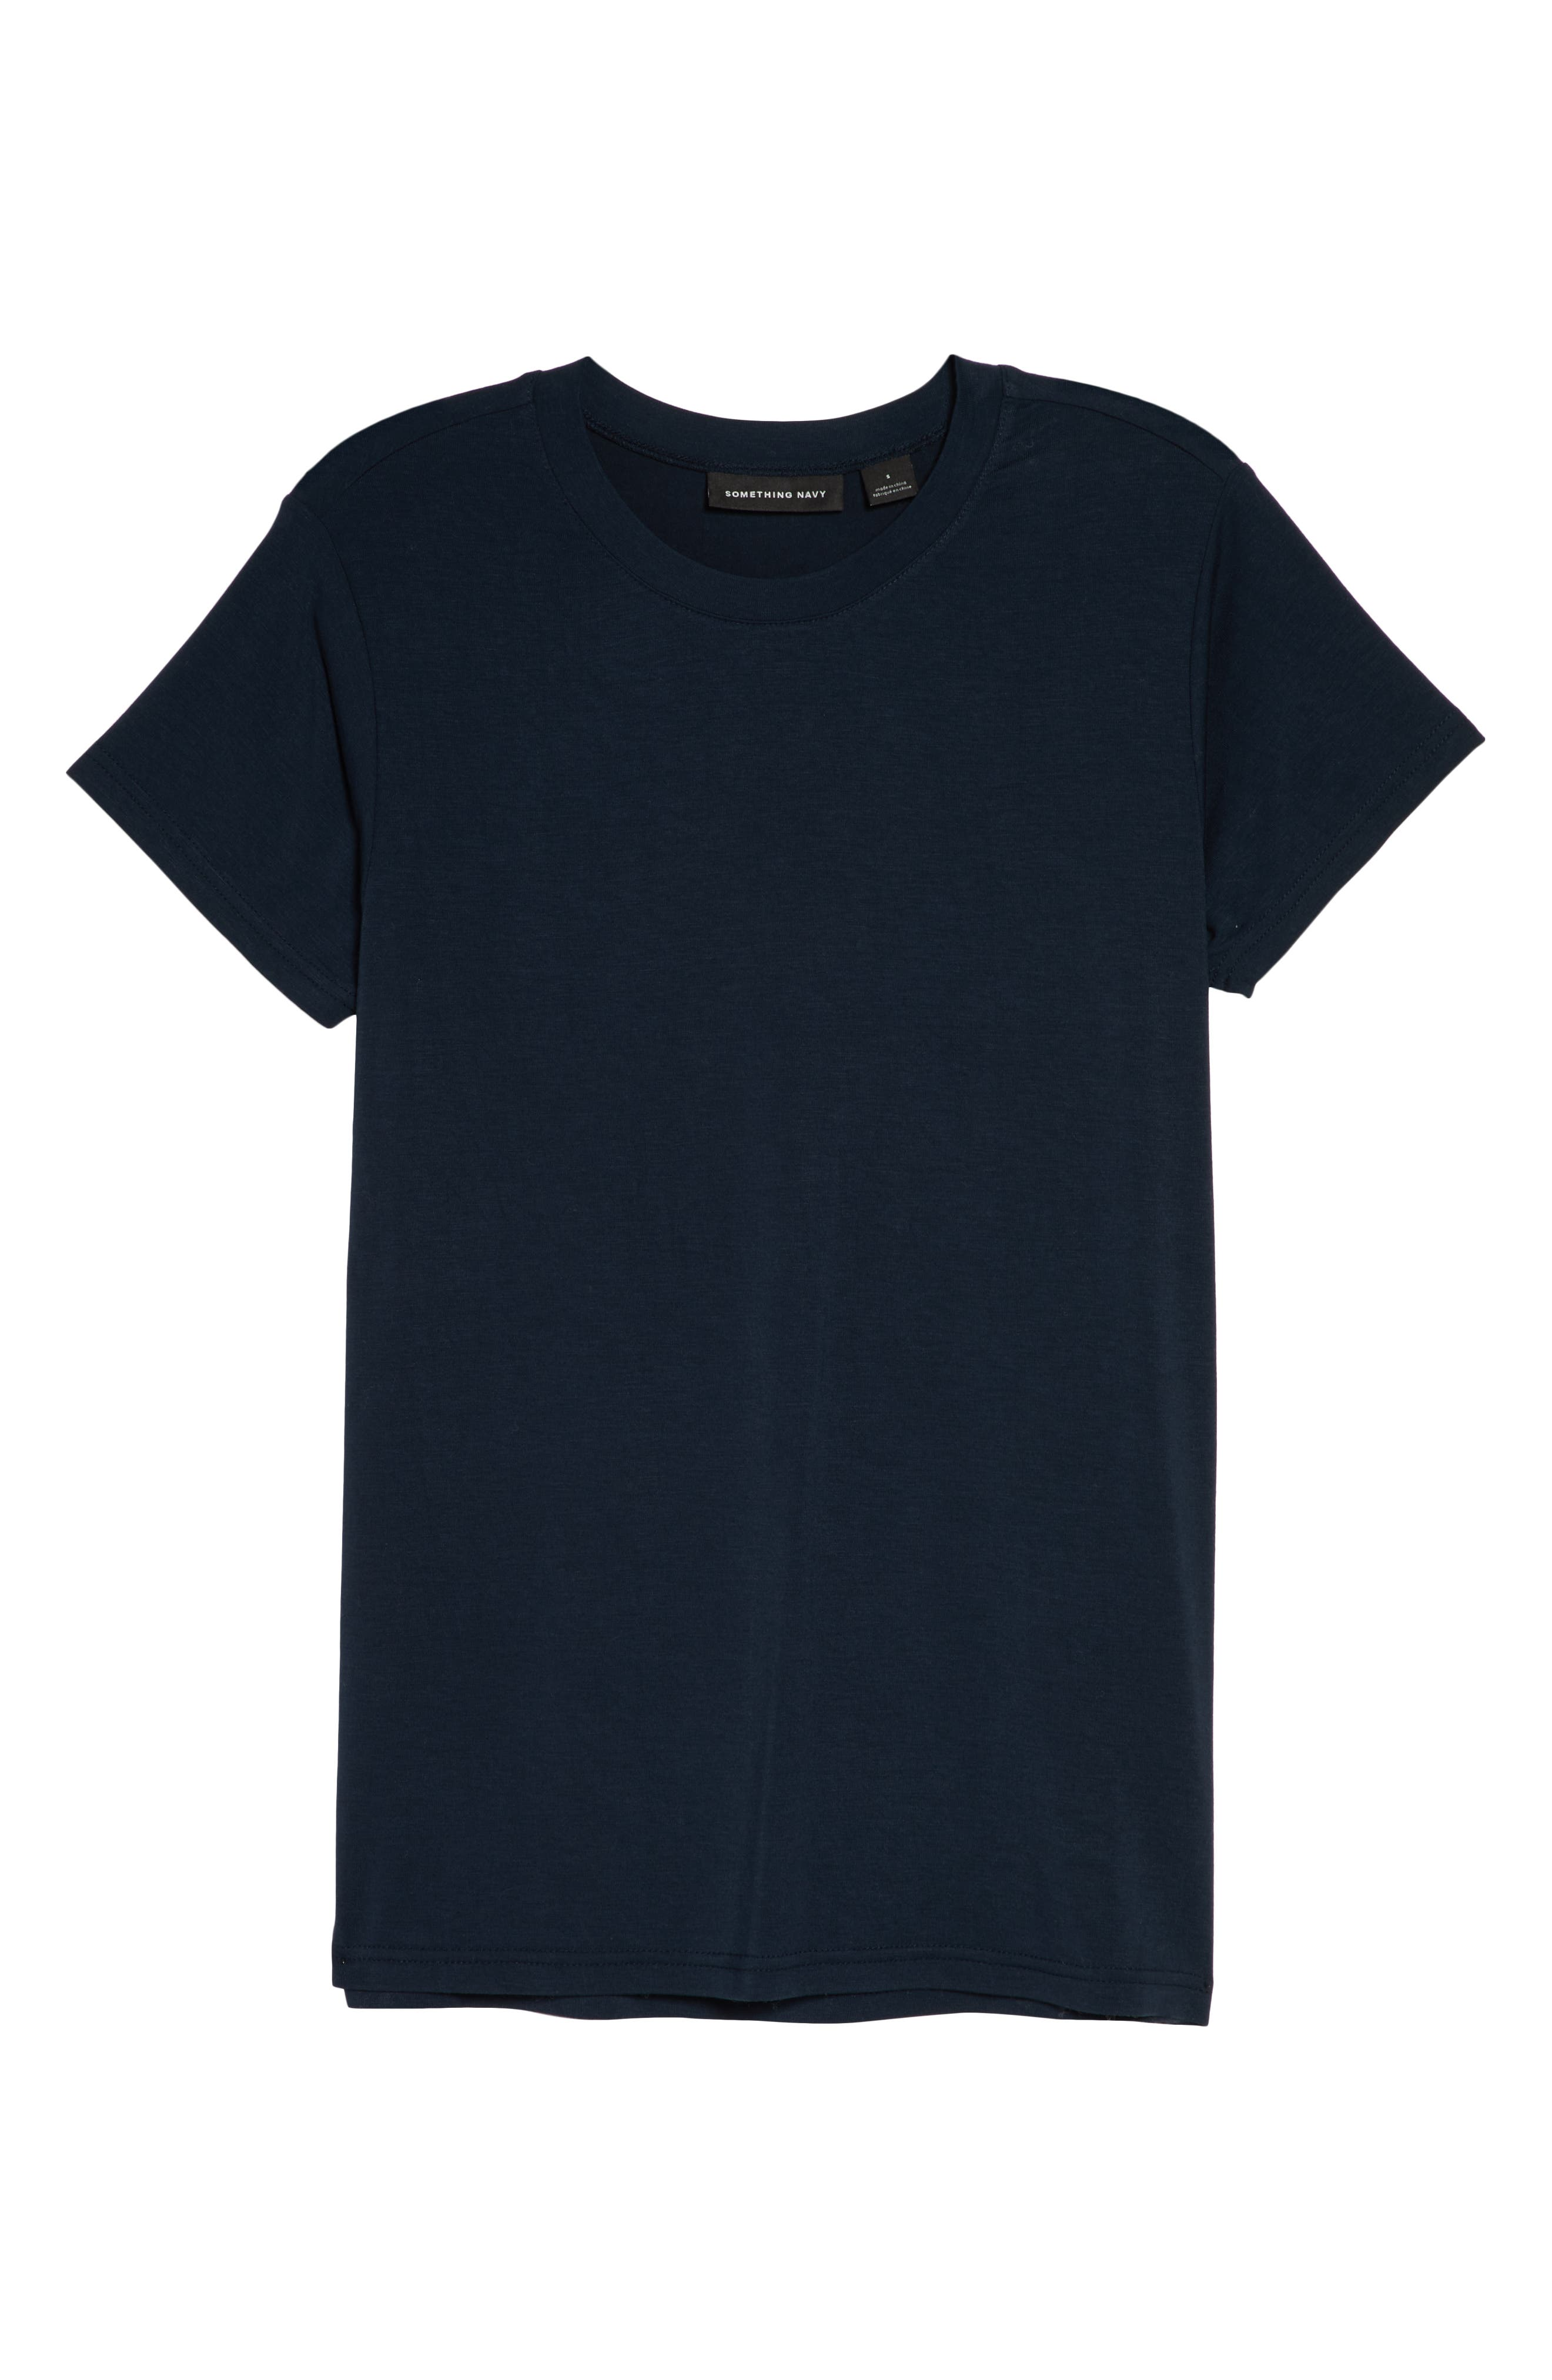 Easy Tee,                             Alternate thumbnail 6, color,                             NAVY CARBON